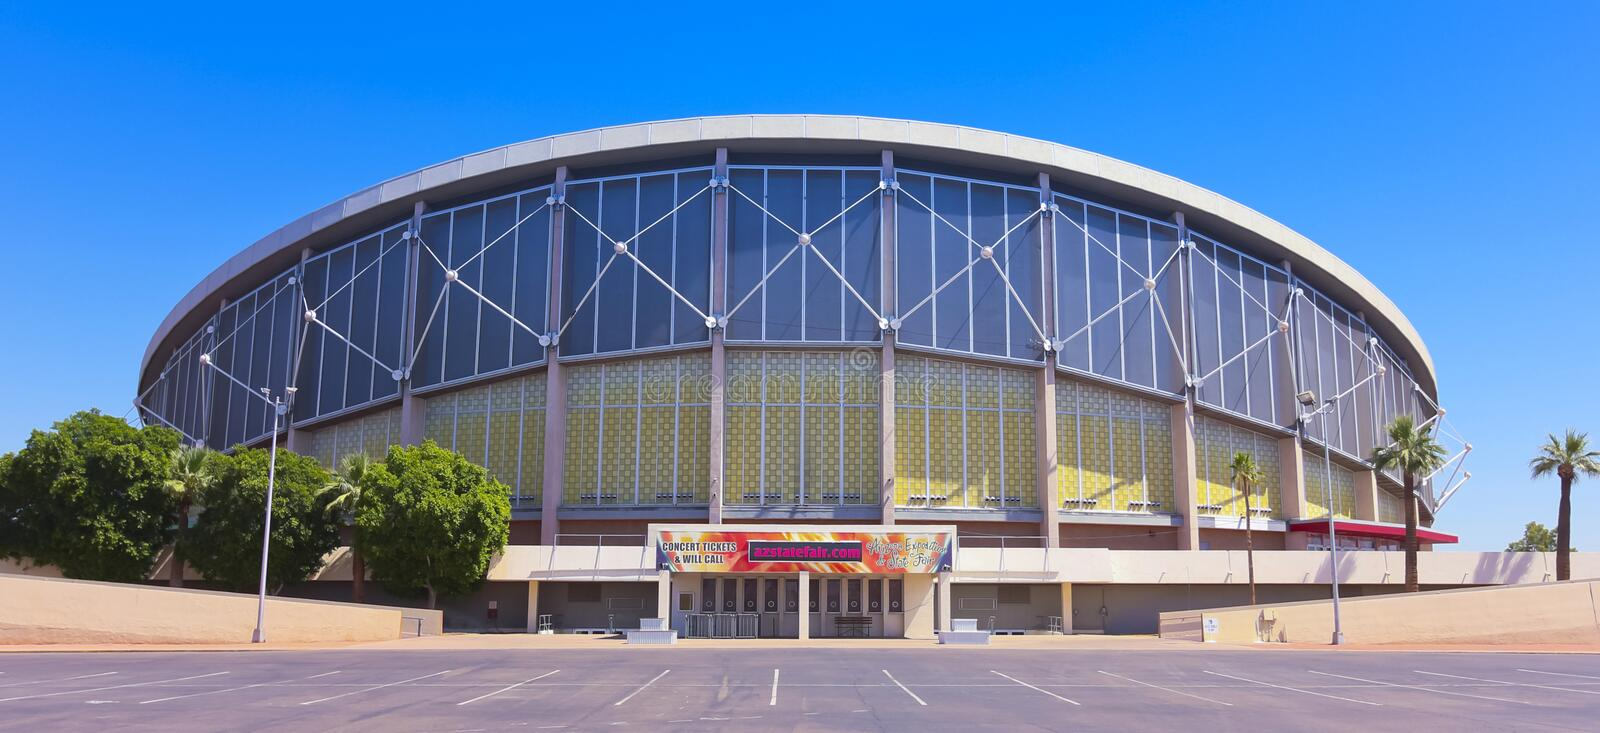 A Sunny Arizona Veterans Memorial Coliseum Shot. PHOENIX, ARIZONA - JUNE 5: The Arizona Veterans Memorial Coliseum on June 5, 2013, in Phoenix, Arizona. The stock photo